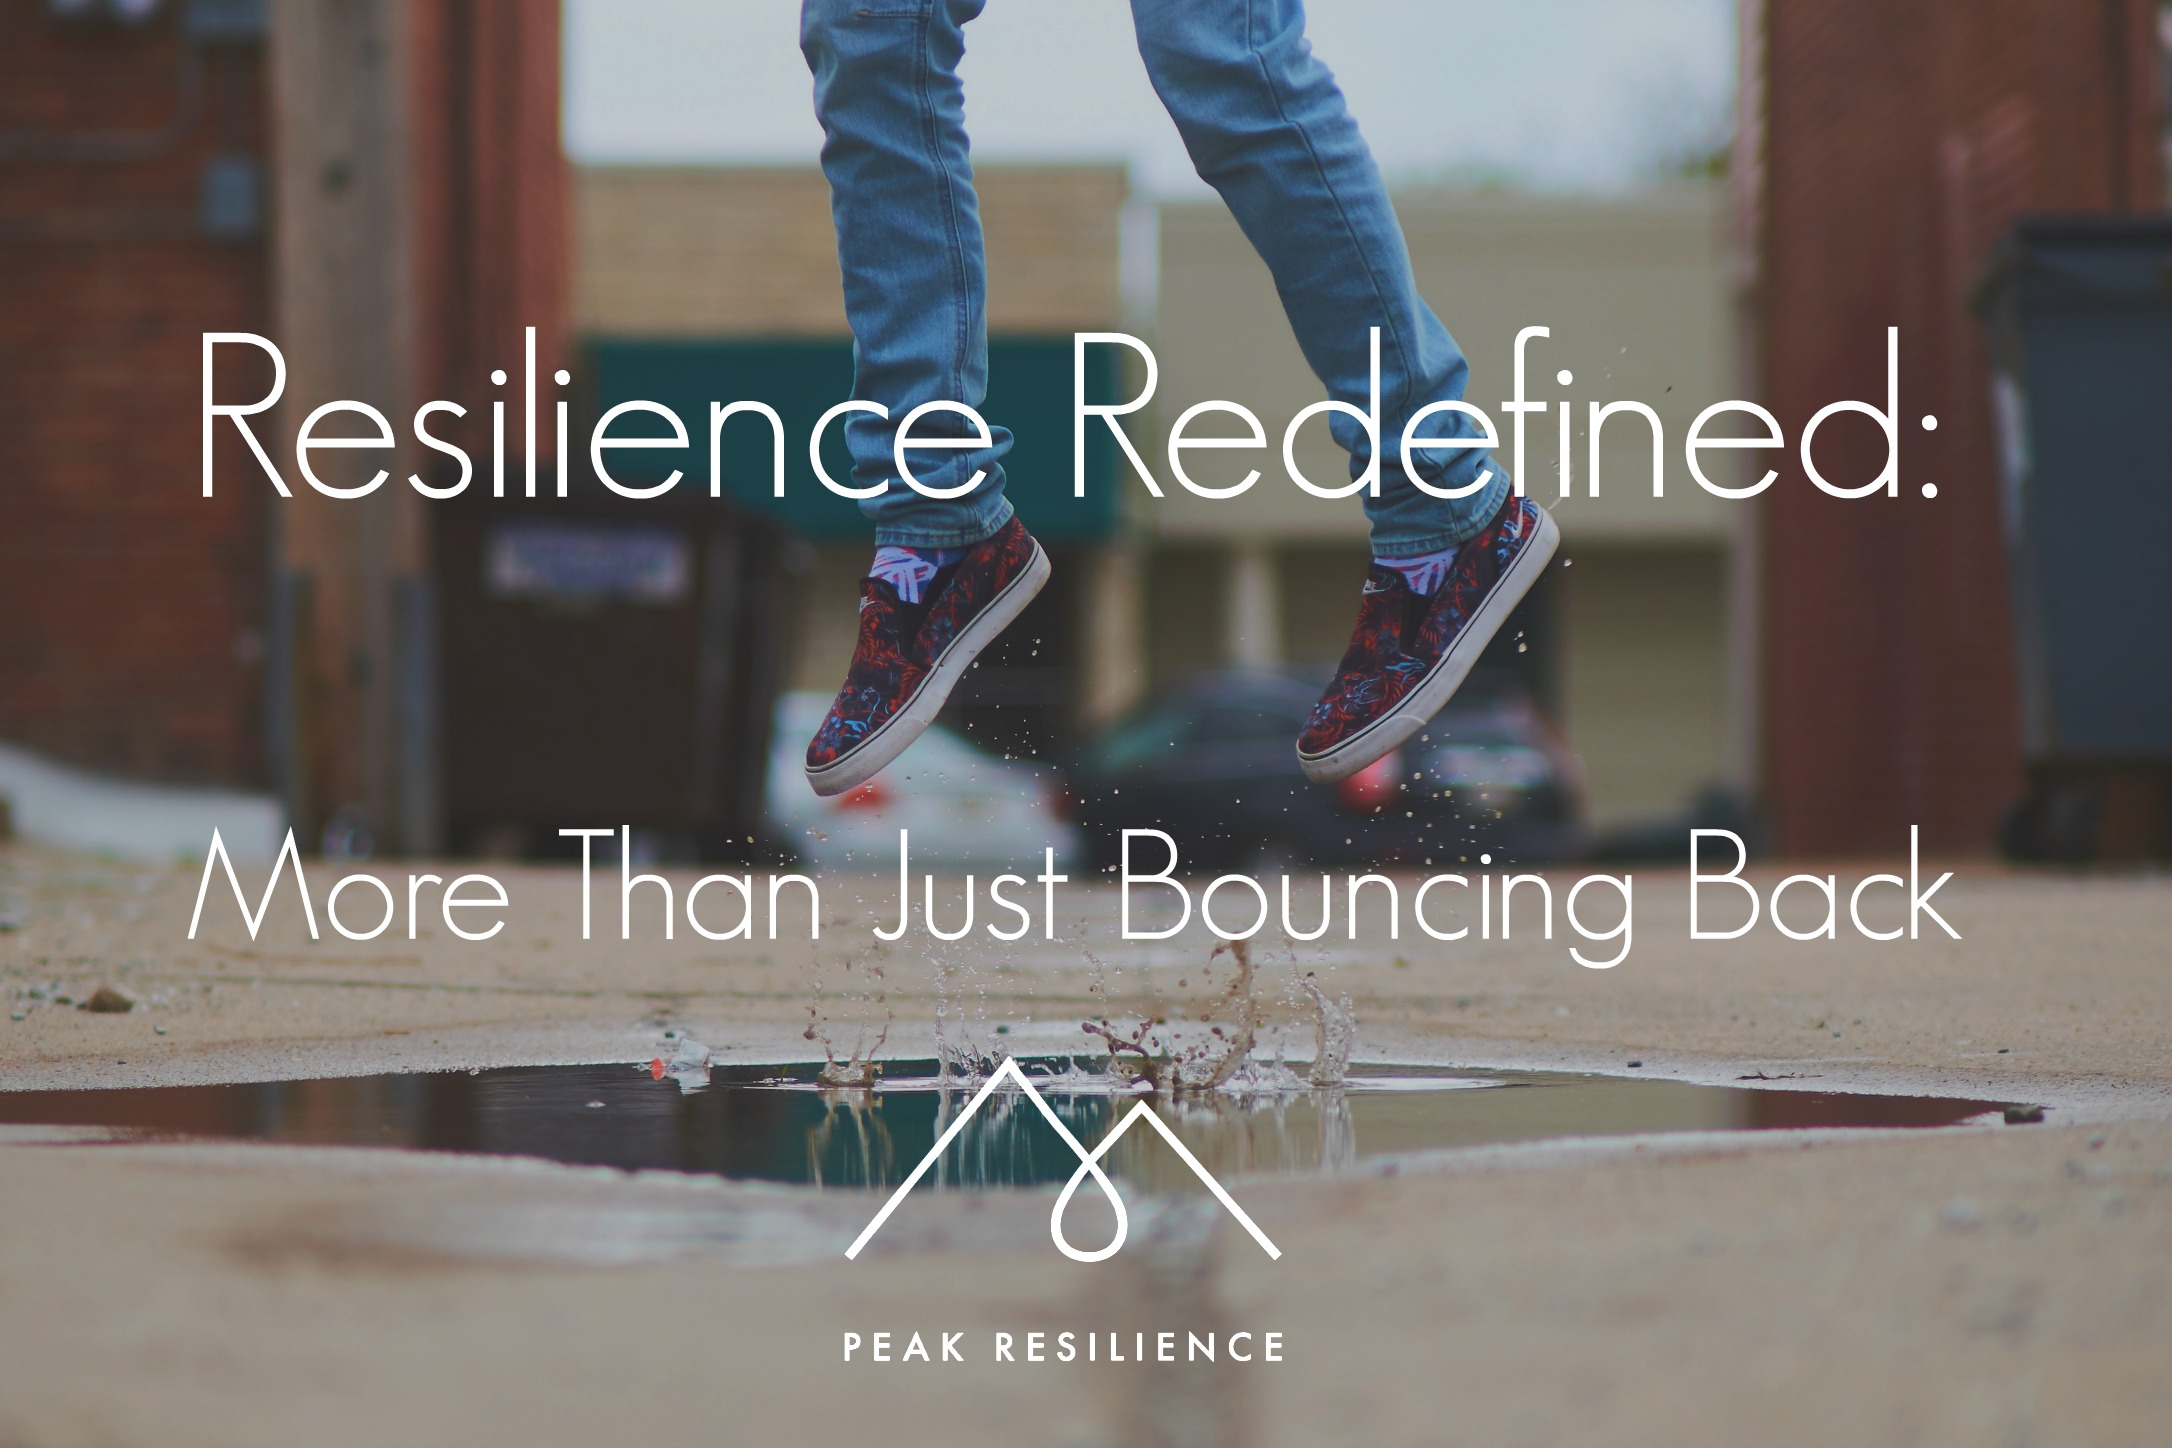 Resilience Redefined: More Than Just Bouncing Back